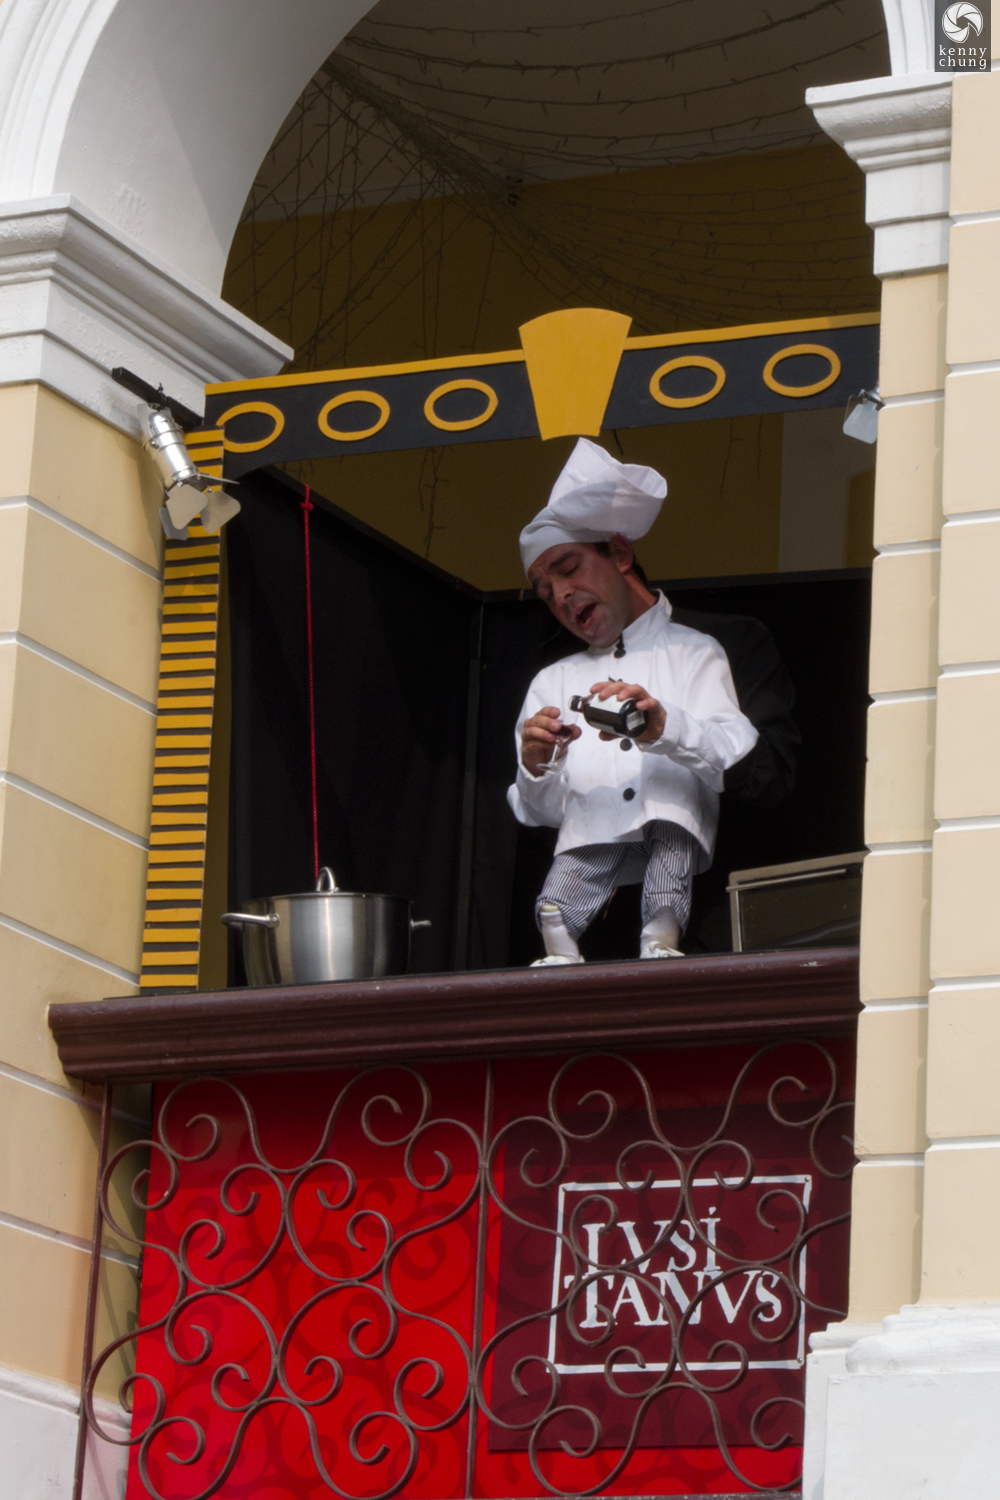 Puppeteer performing a comedy act on a balcony in Macau